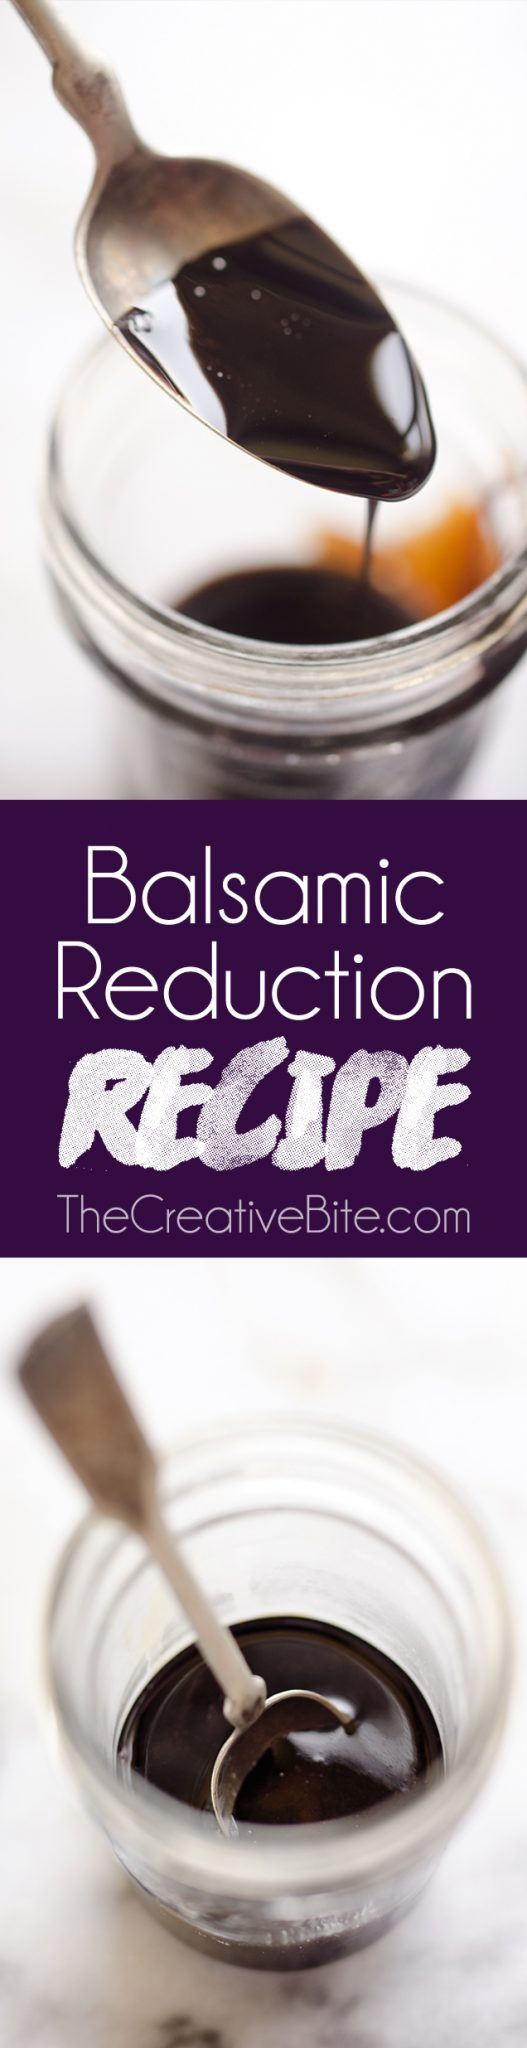 Everyone needs a great Balsamic Reduction Recipe in their repertoire! Whether you want to add a great glaze to meat or dress up a salad with something special, balsamic reduction is a sweet and tangy sauce that adds amazing flavor to any dish. #Balsamic #Glaze #Sauce